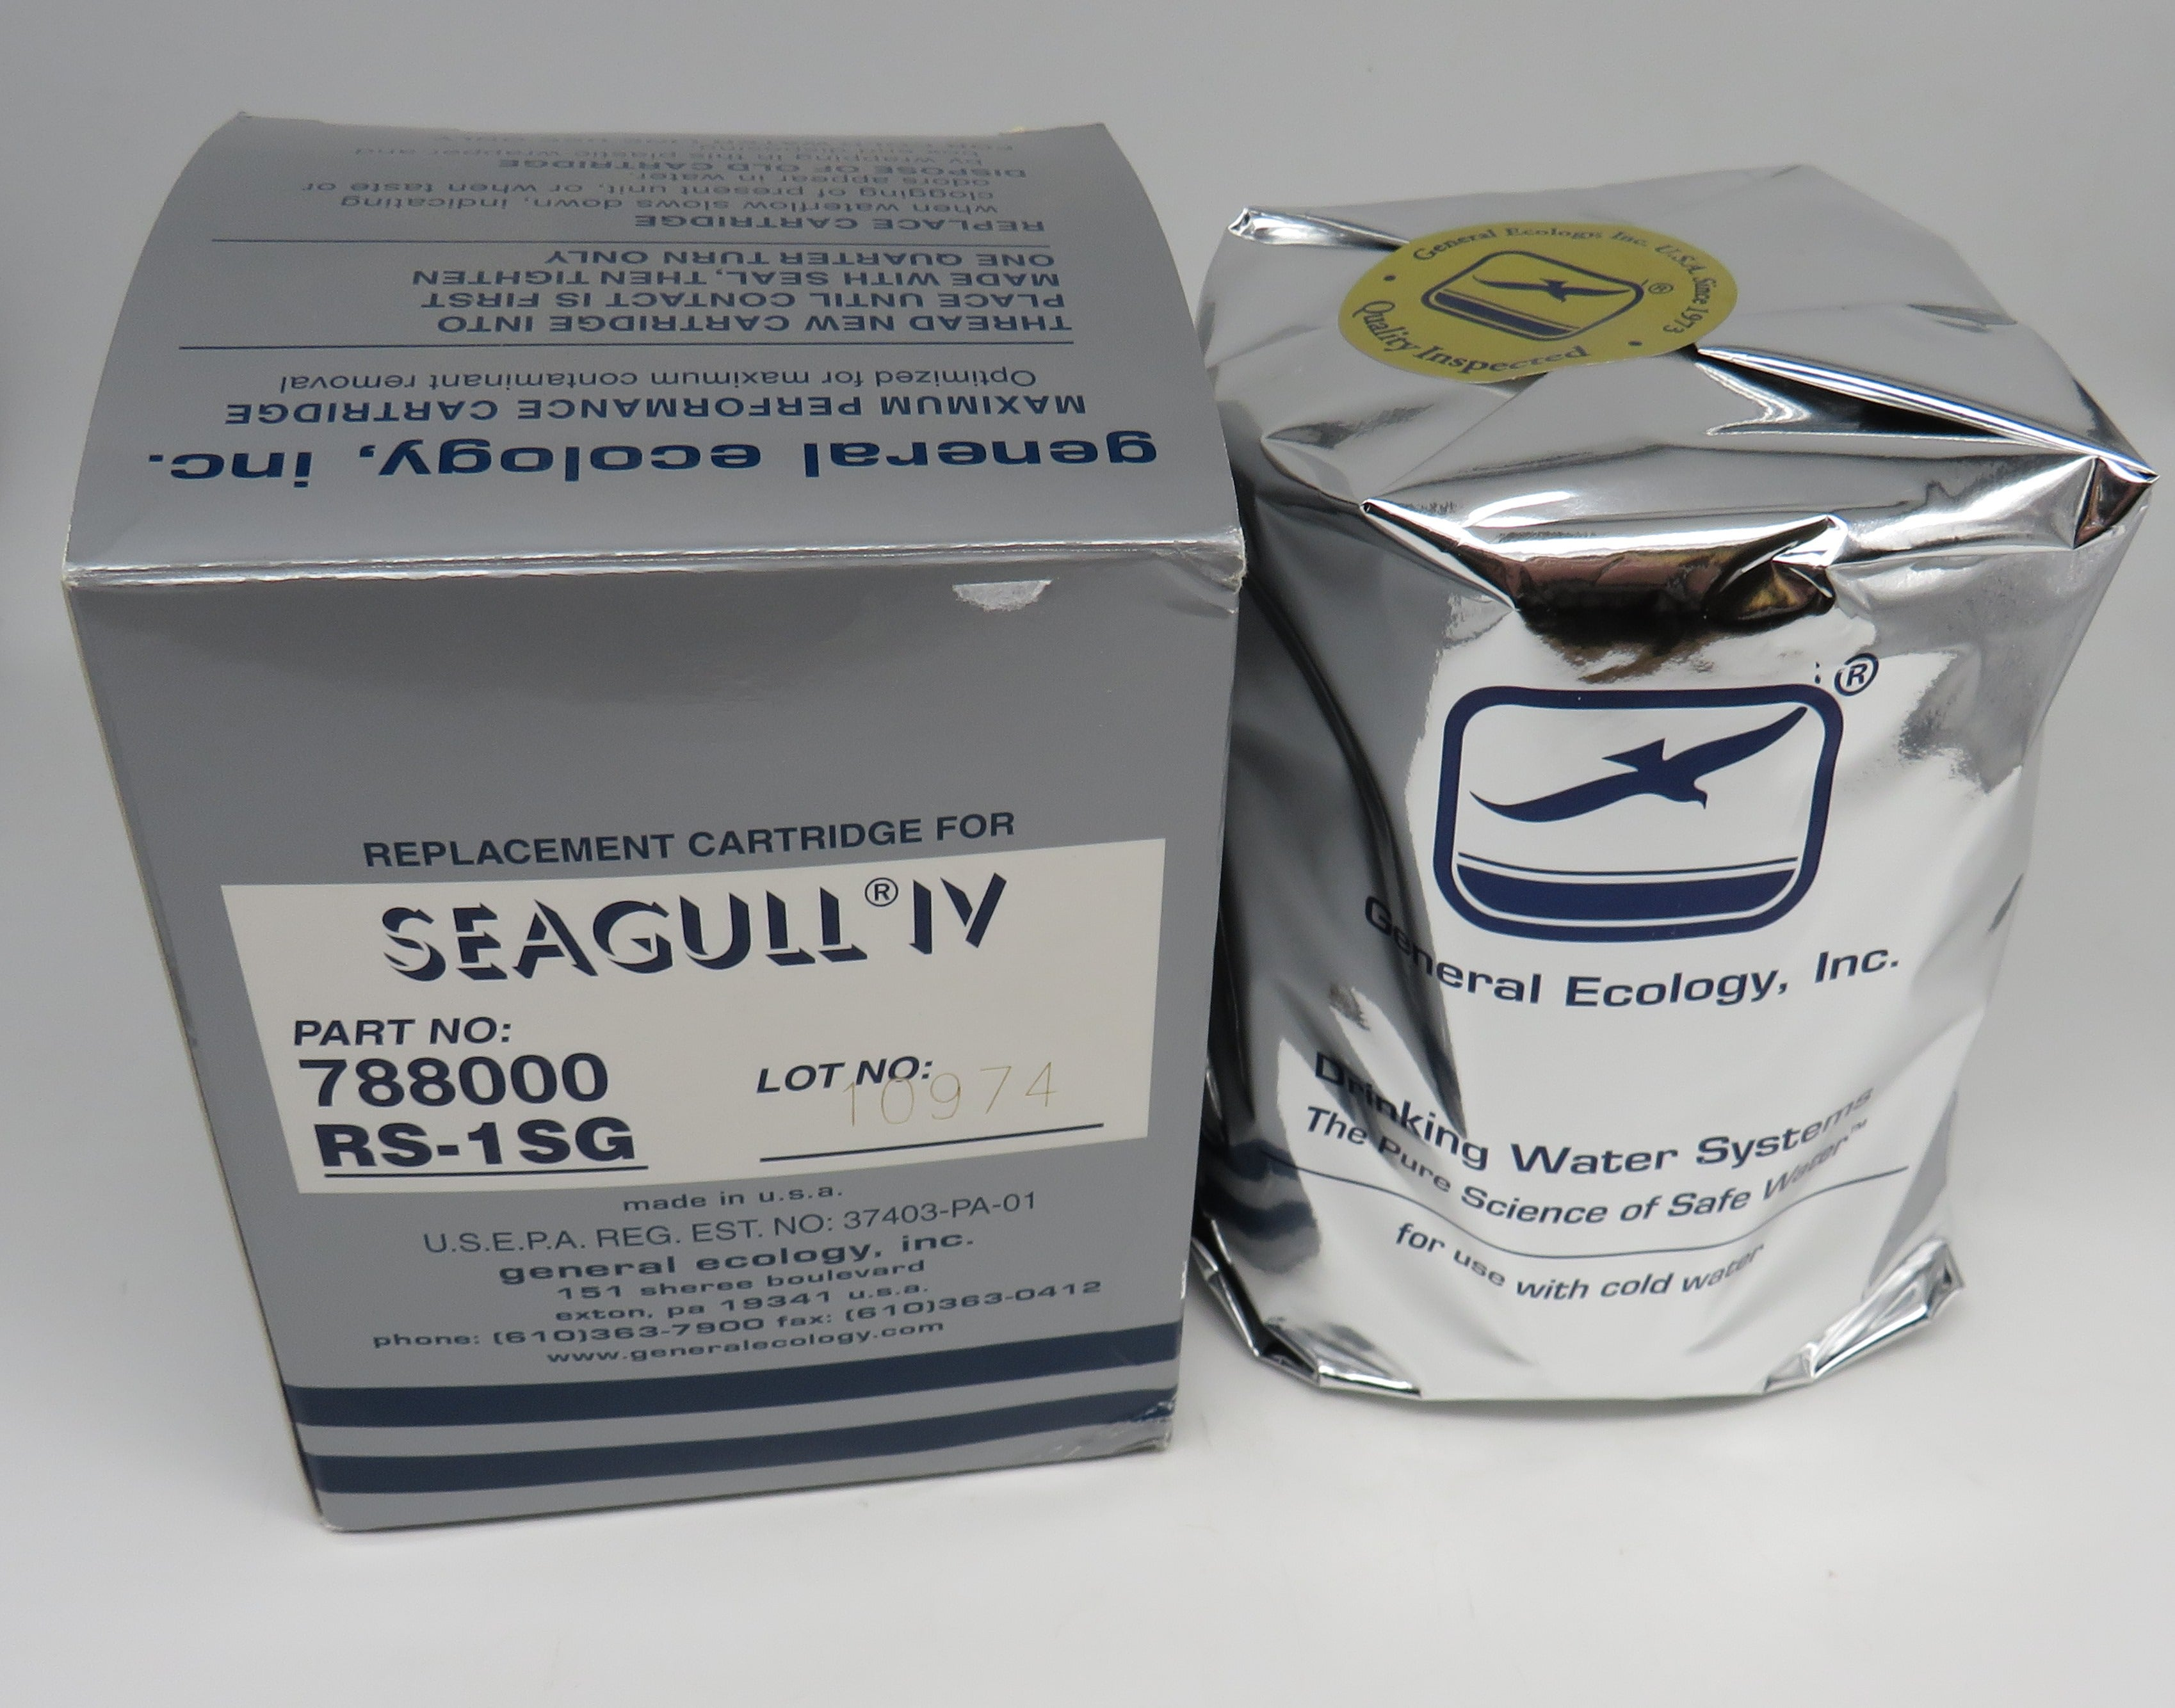 GE788000 Seagull IV RS-1SG Cartridge